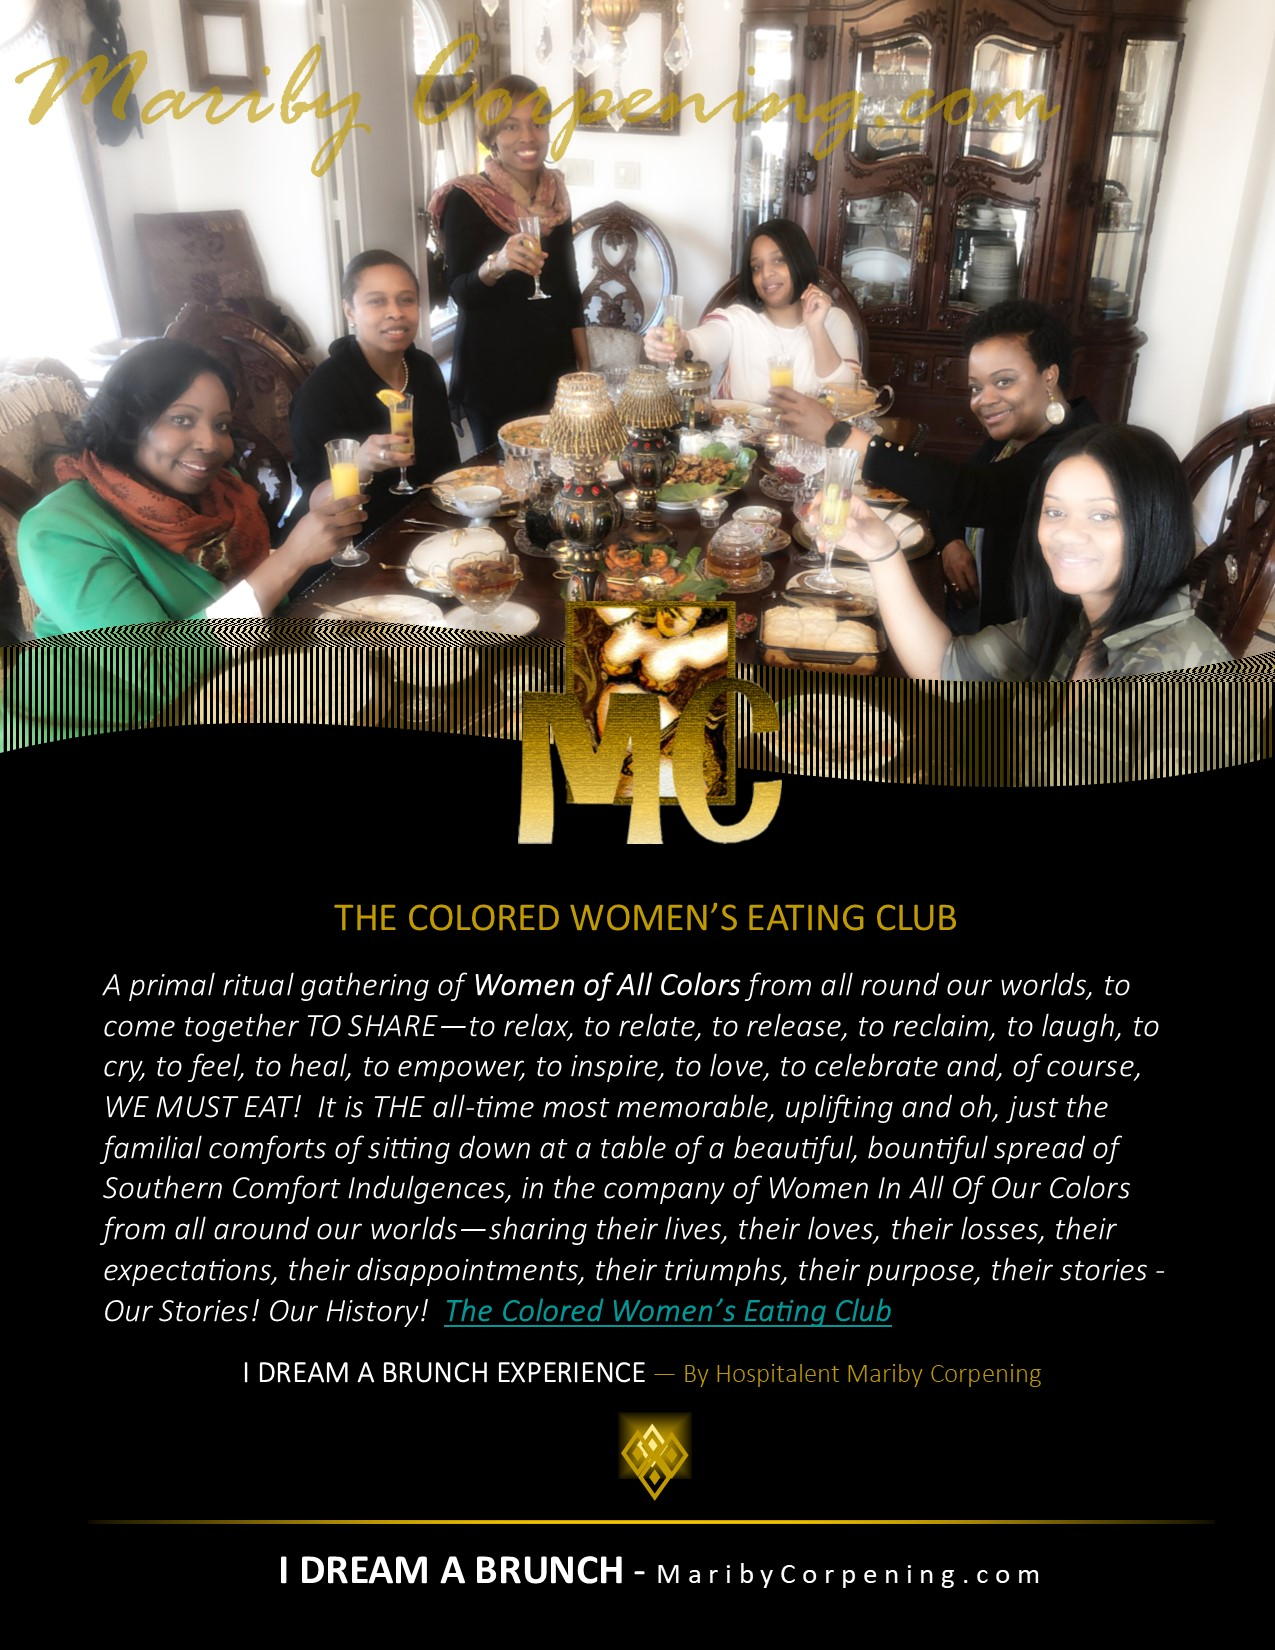 I DREAM A BRUNCH PROMO - The Colored Womens Eating Club - MaribyCorpening.jpg